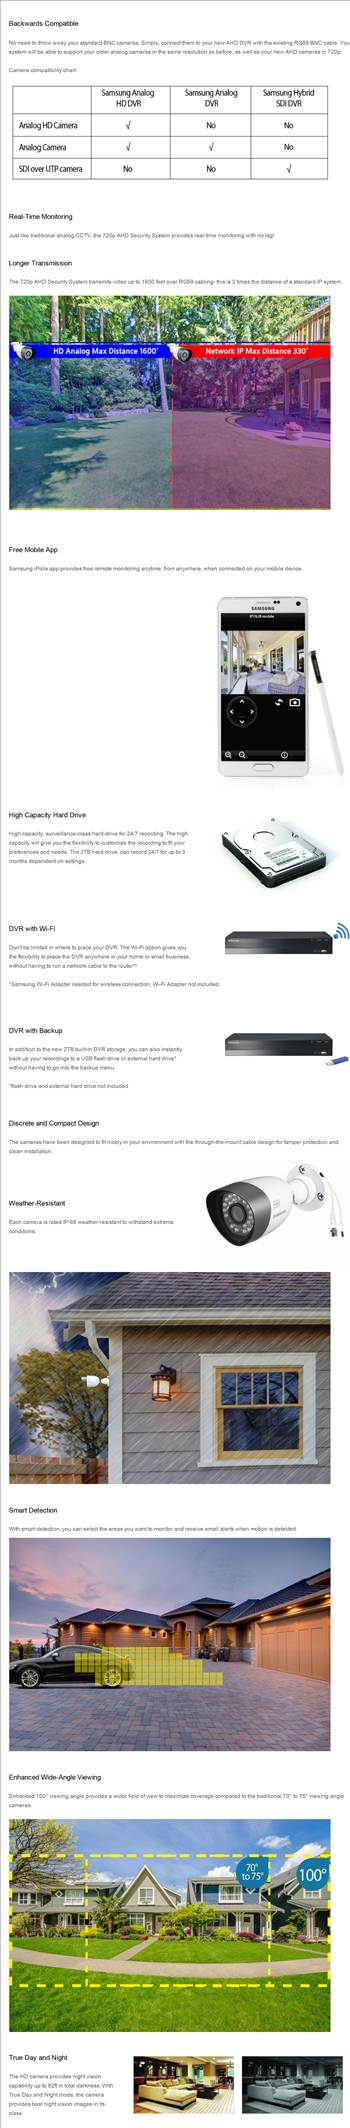 Samsung SDH-C5100 16 Channel 720p HD DVR Video Security System-1.png by tnte